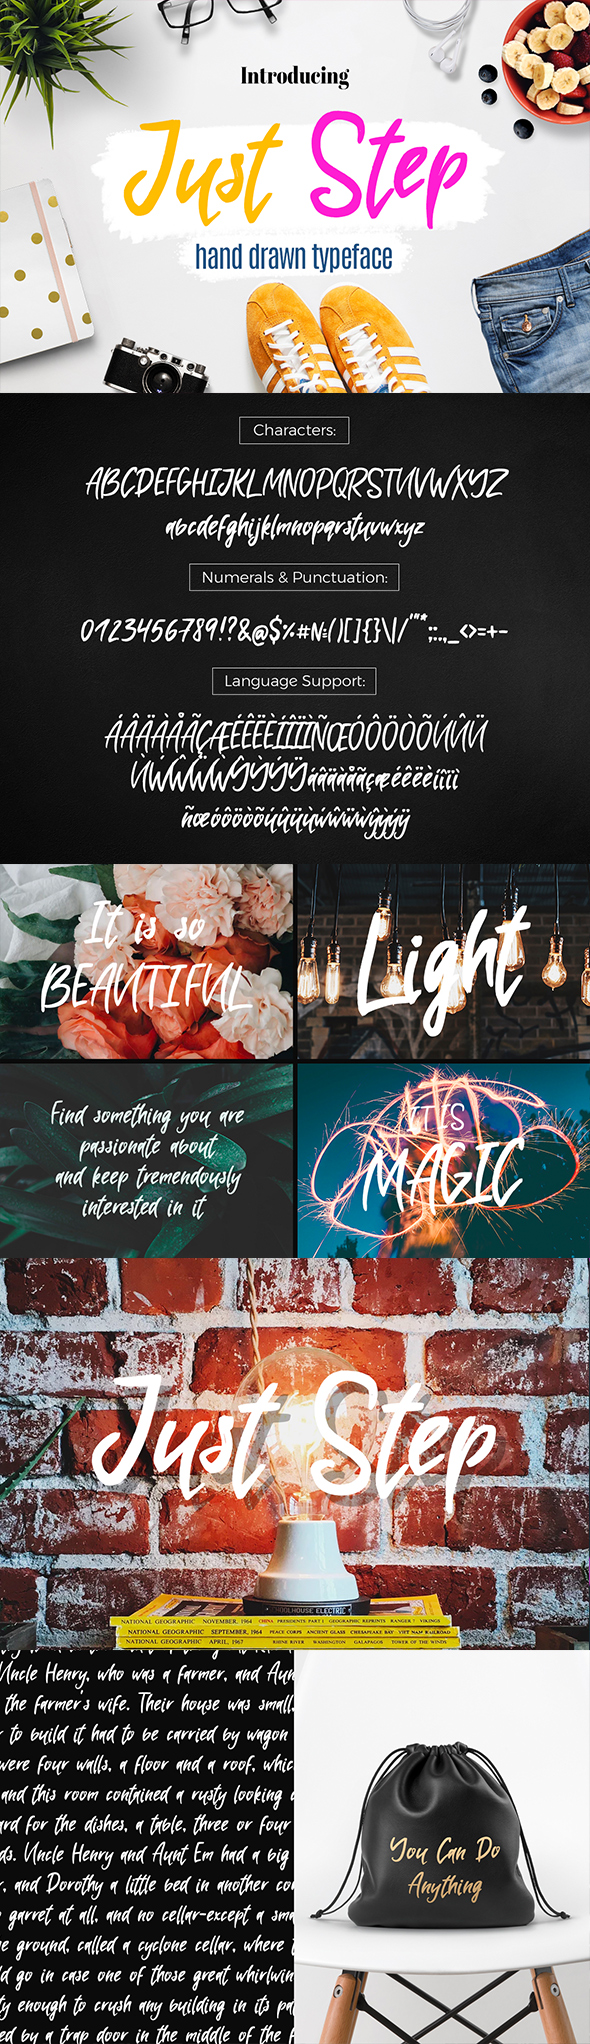 Just Step Typeface - Hand Drawn Font - Hand-writing Script